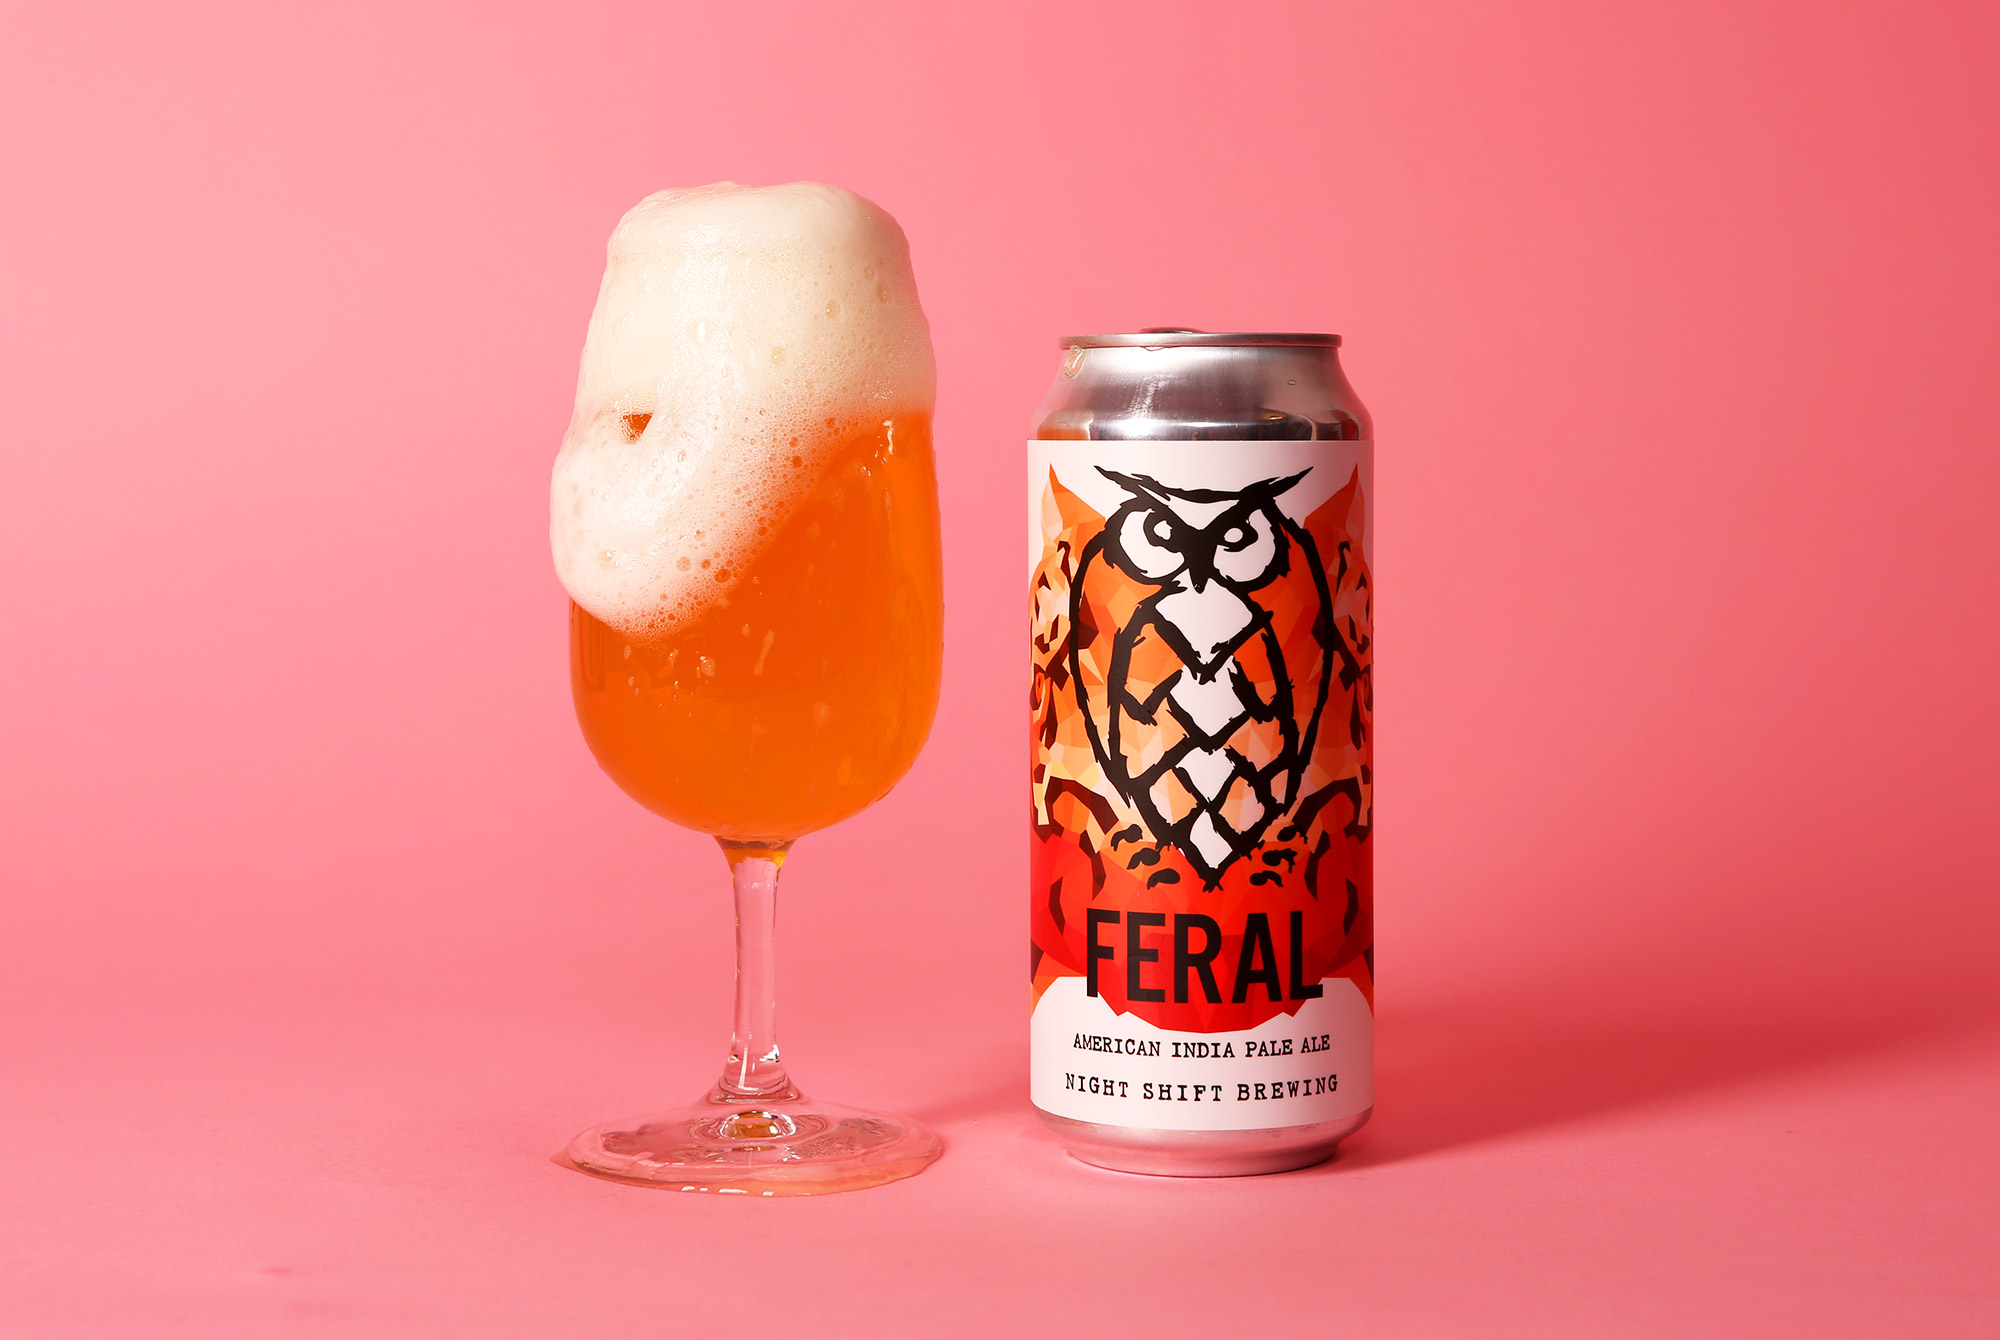 Feral IPA from Night Shift, one of the best breweries in Boston